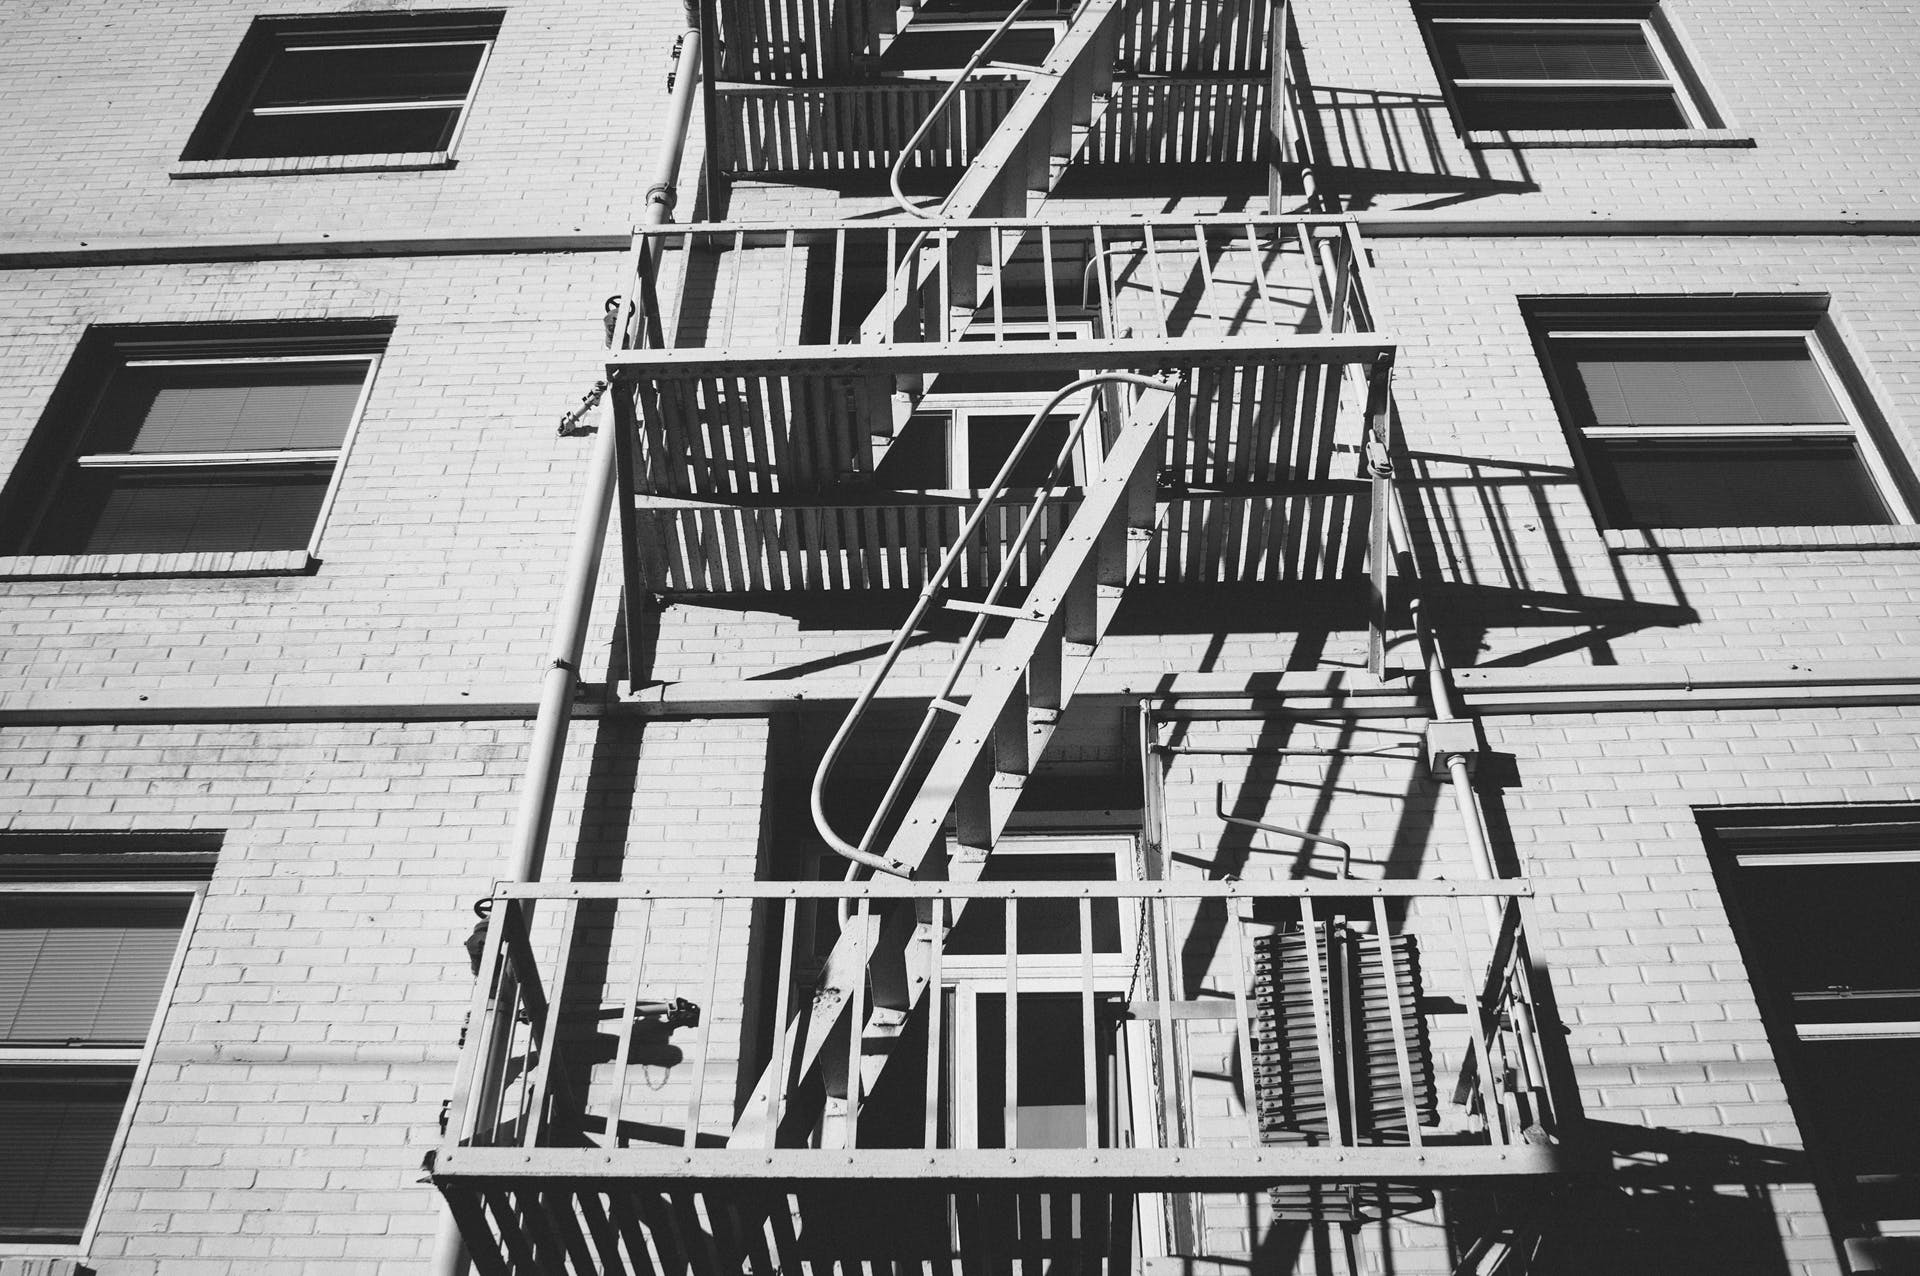 Free stock photo of stairs, black-and-white, fire escape, fire ladder